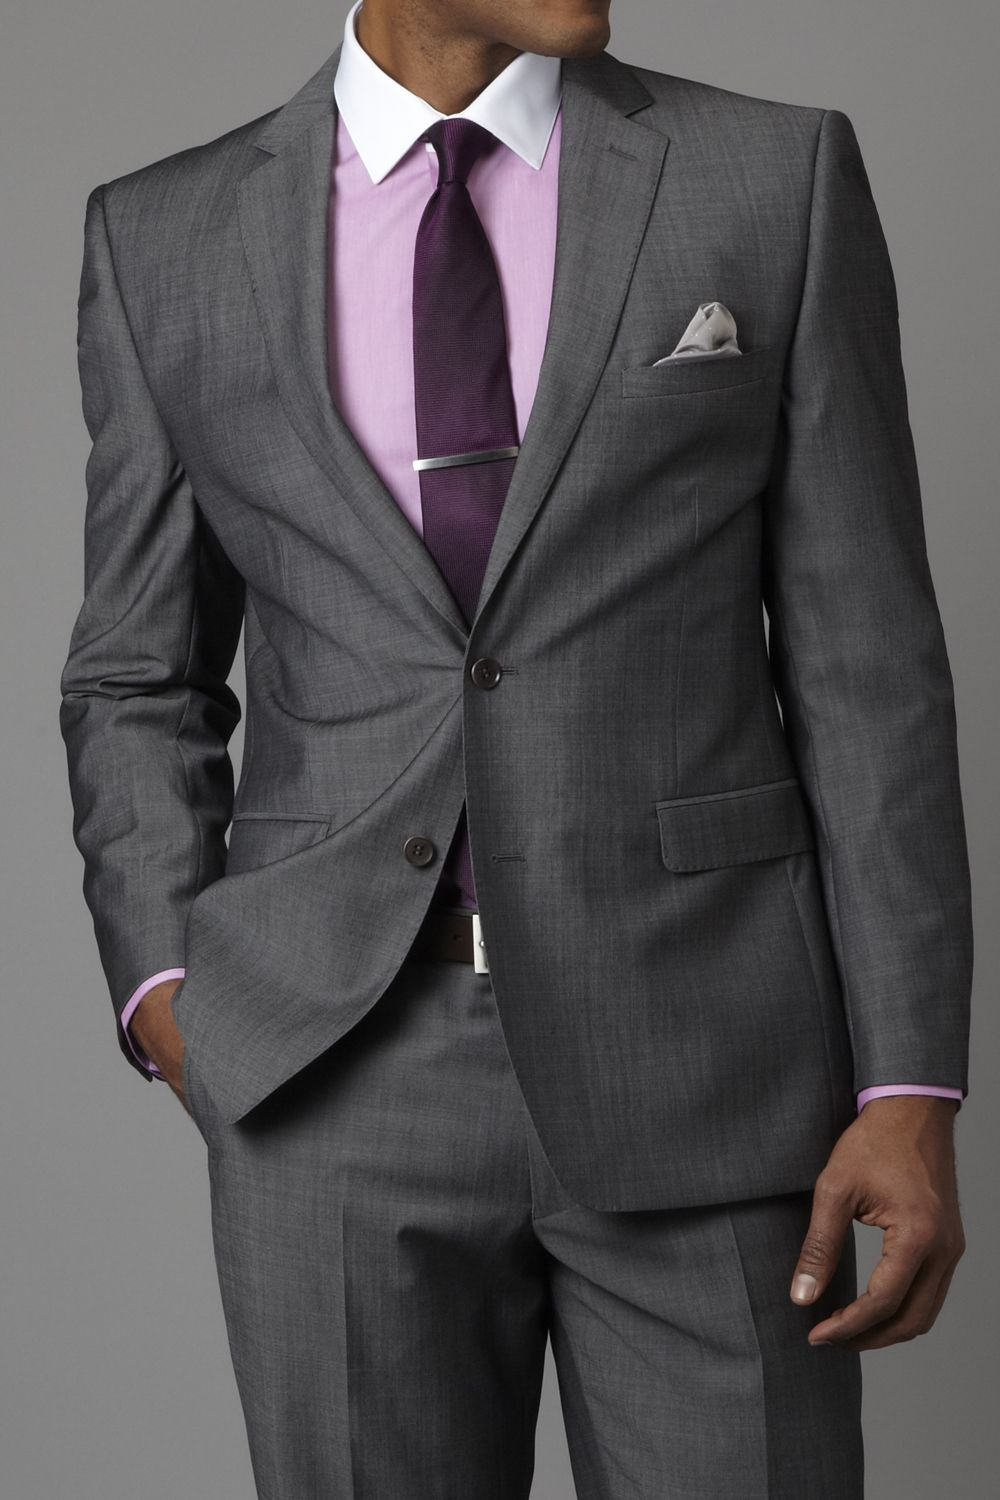 Dark Grey Suit with splash of purple. A 6FigureJobs color favorite ...